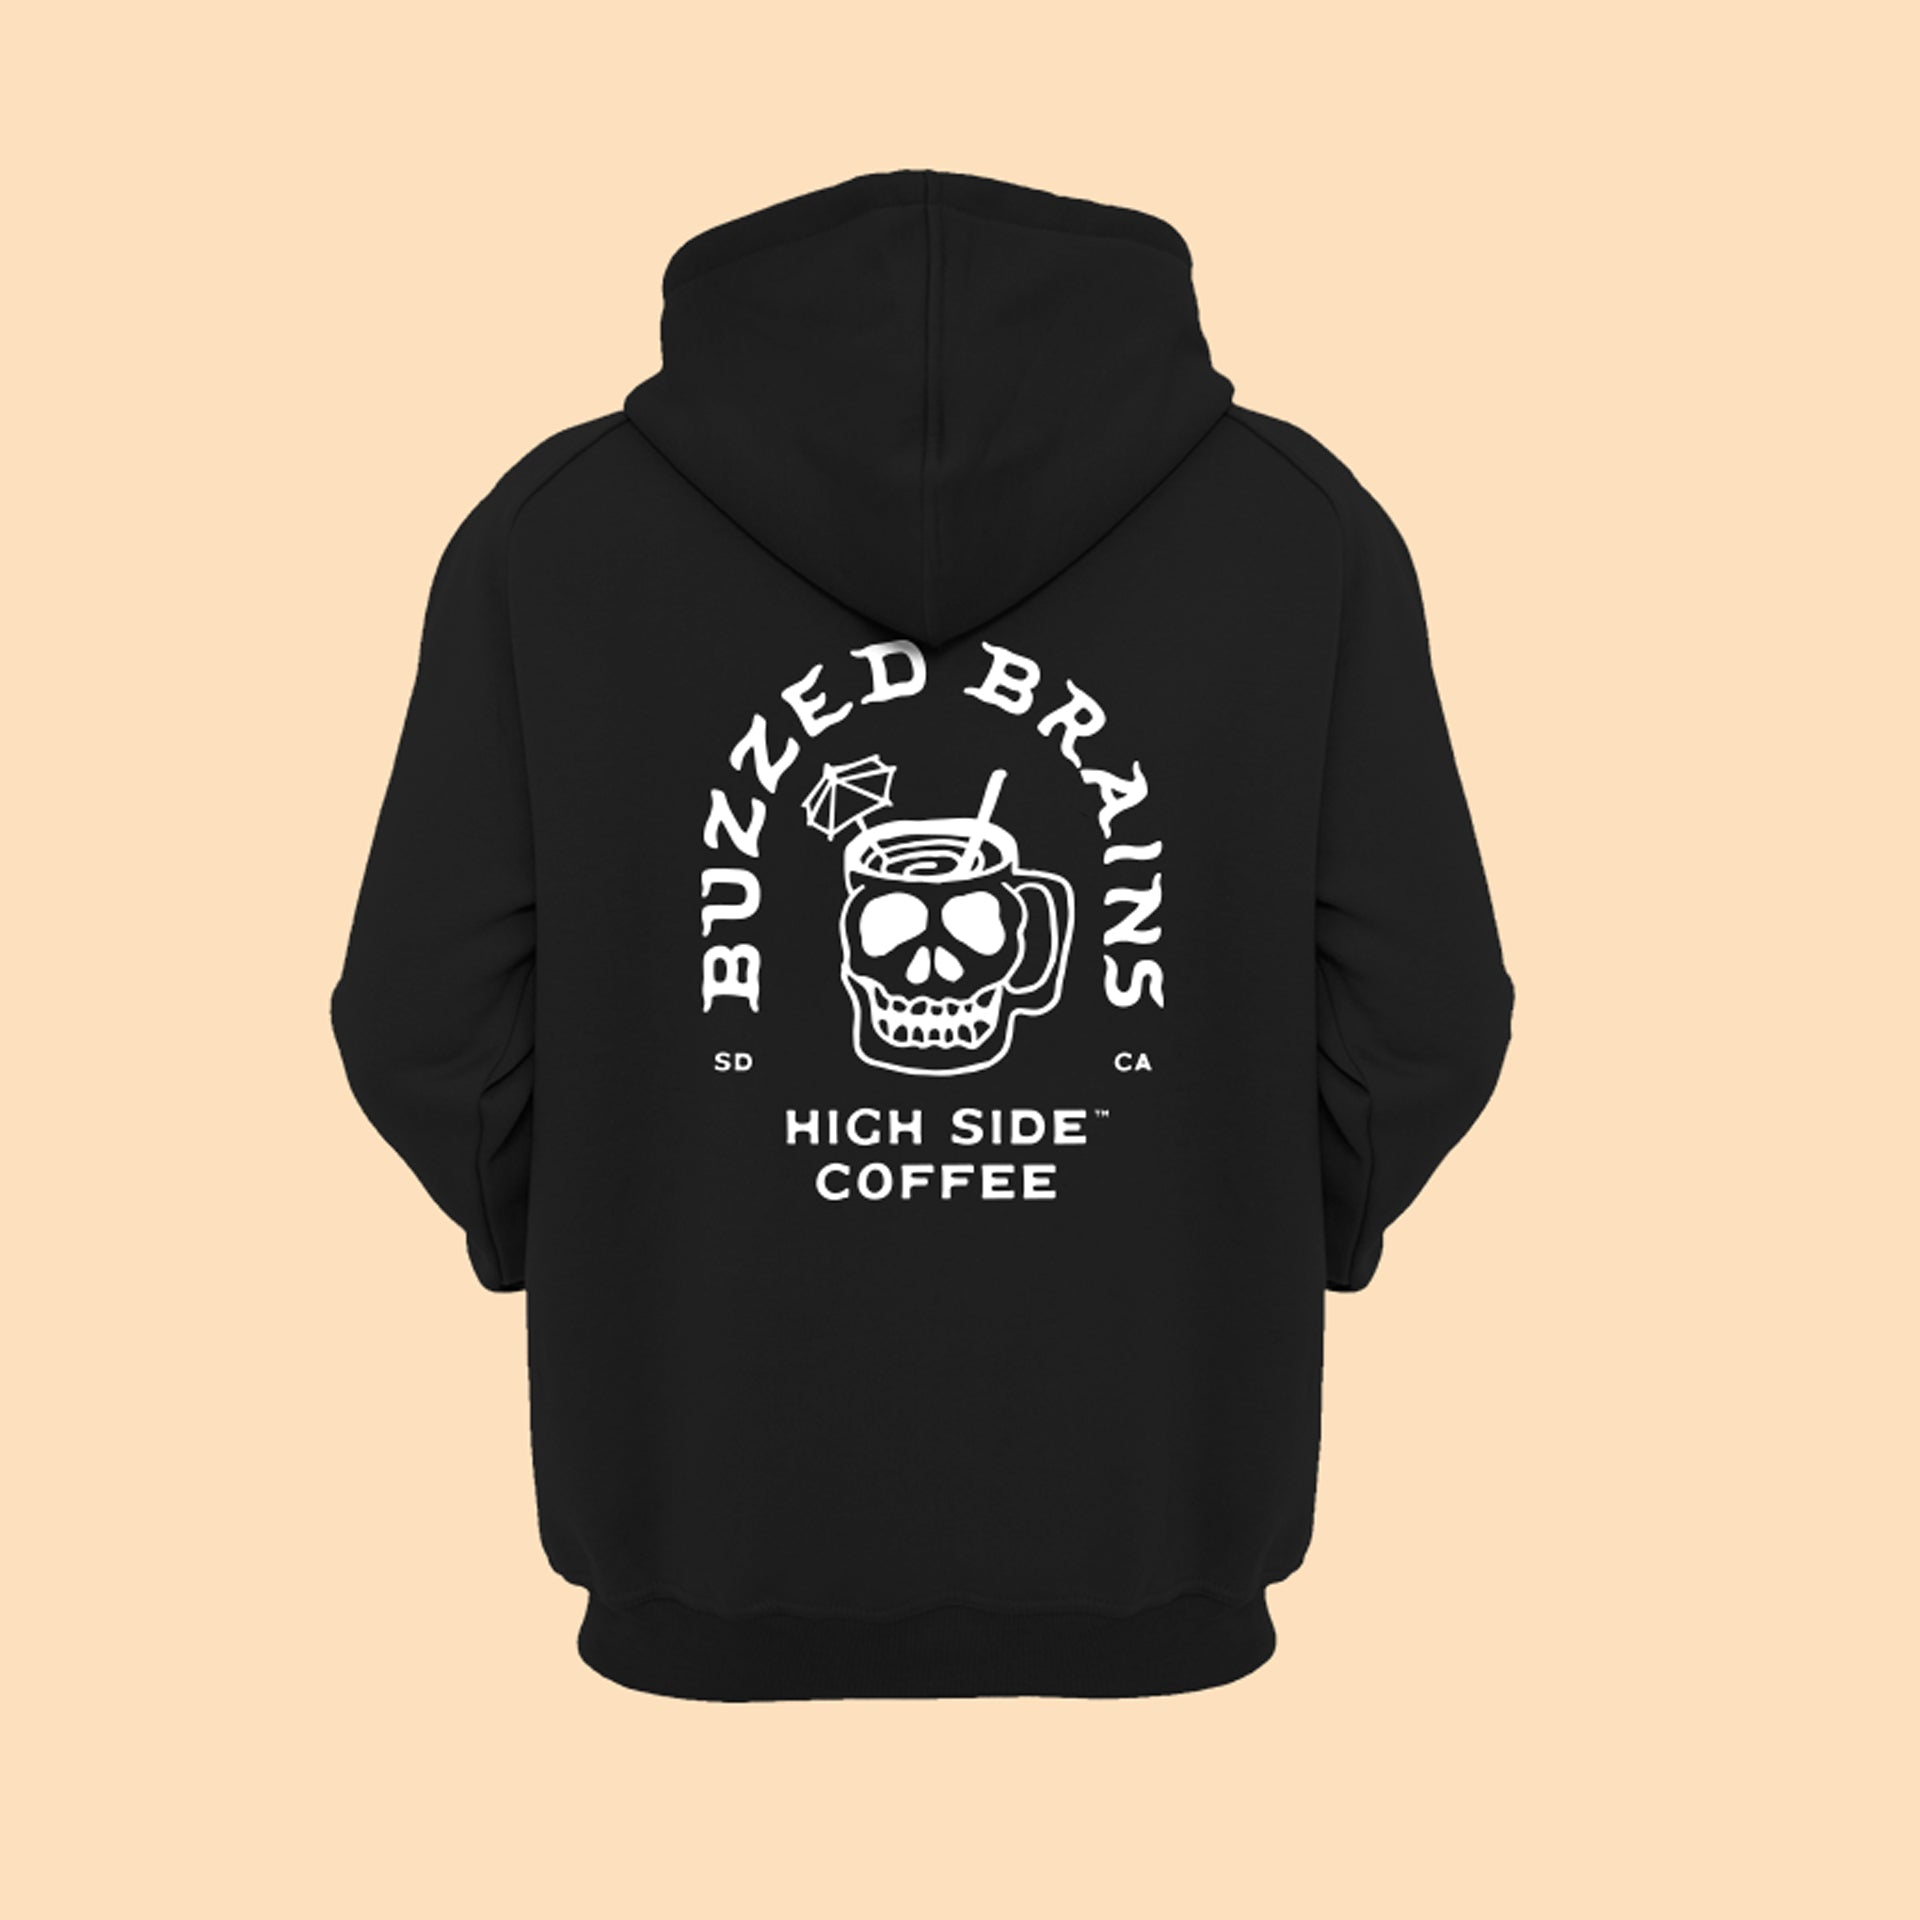 Buzzed Brains Hoodie - High Side Coffee